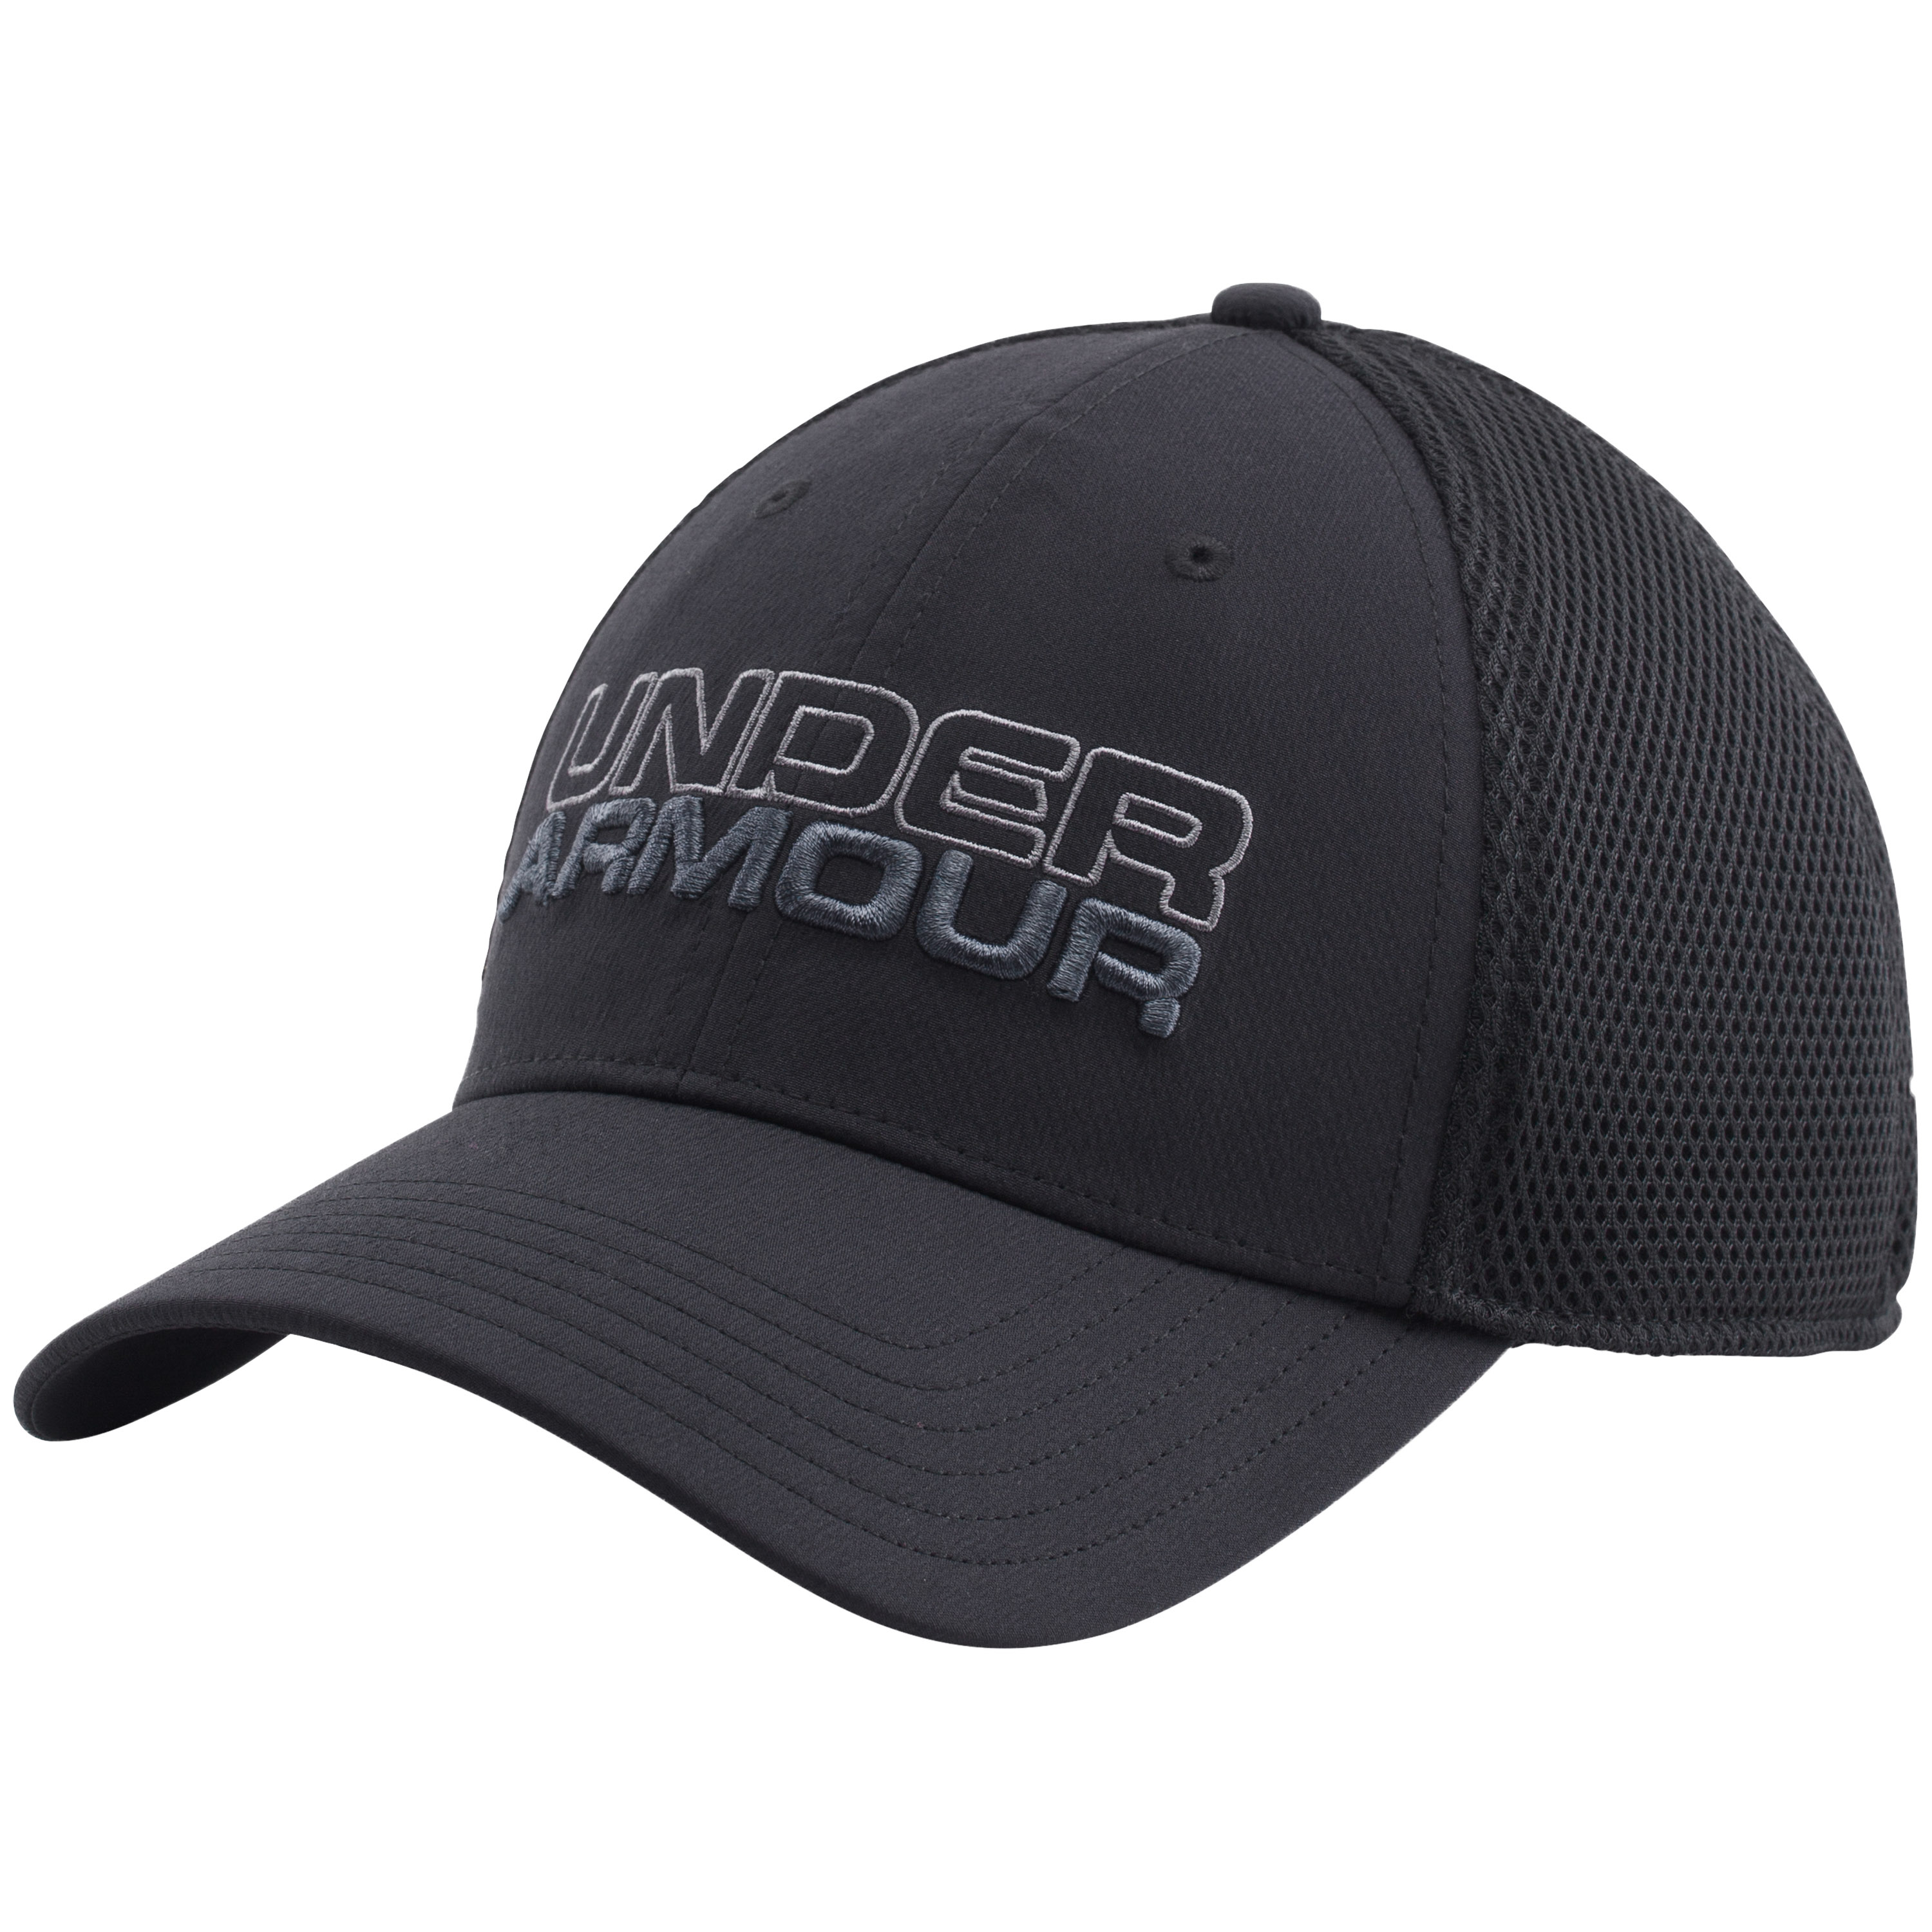 Under Armour Cap Mens Sports Style black